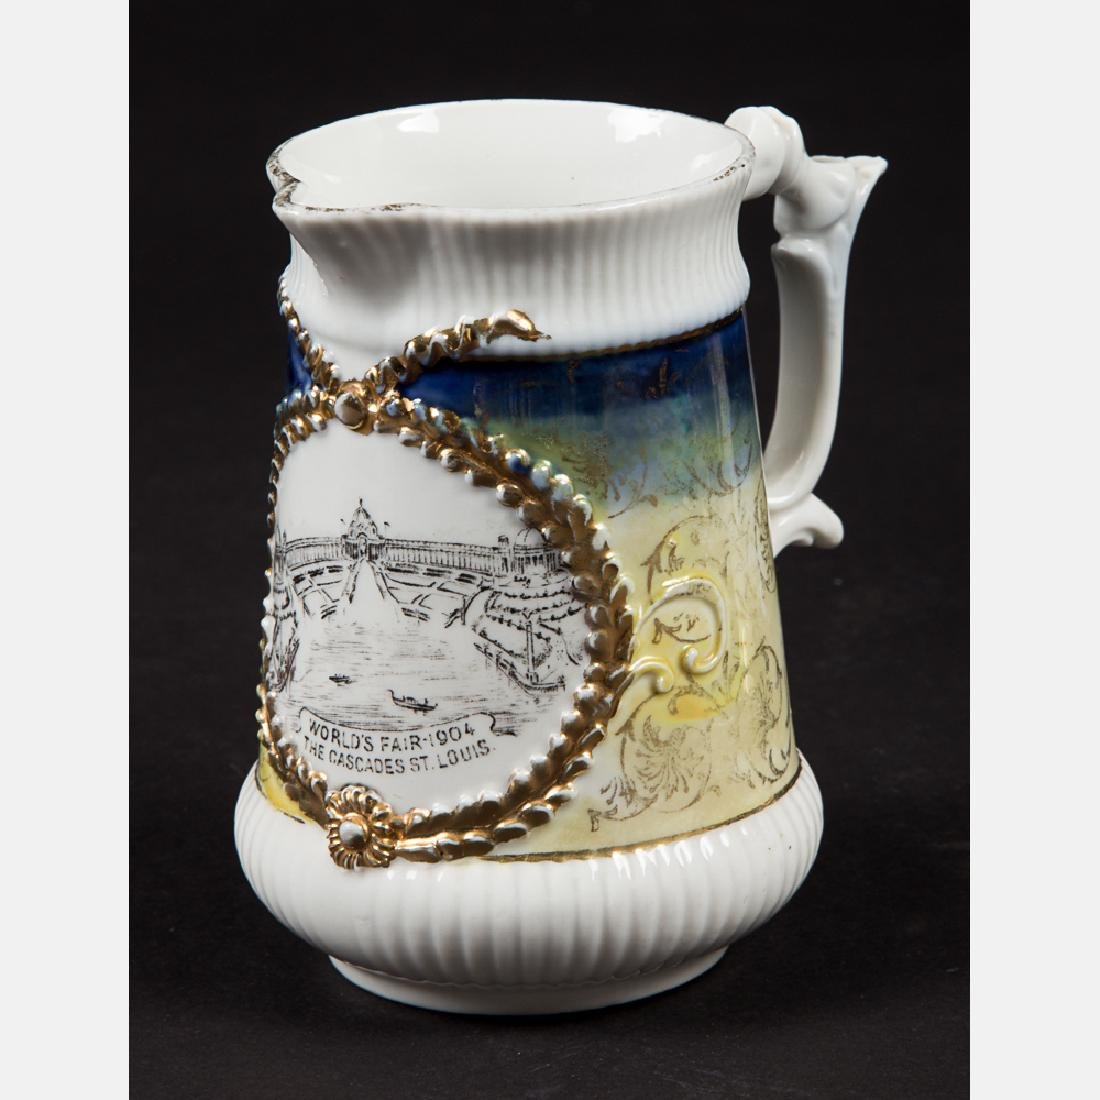 A Group of Six Porcelain Souvenirs from the Louisiana - 6